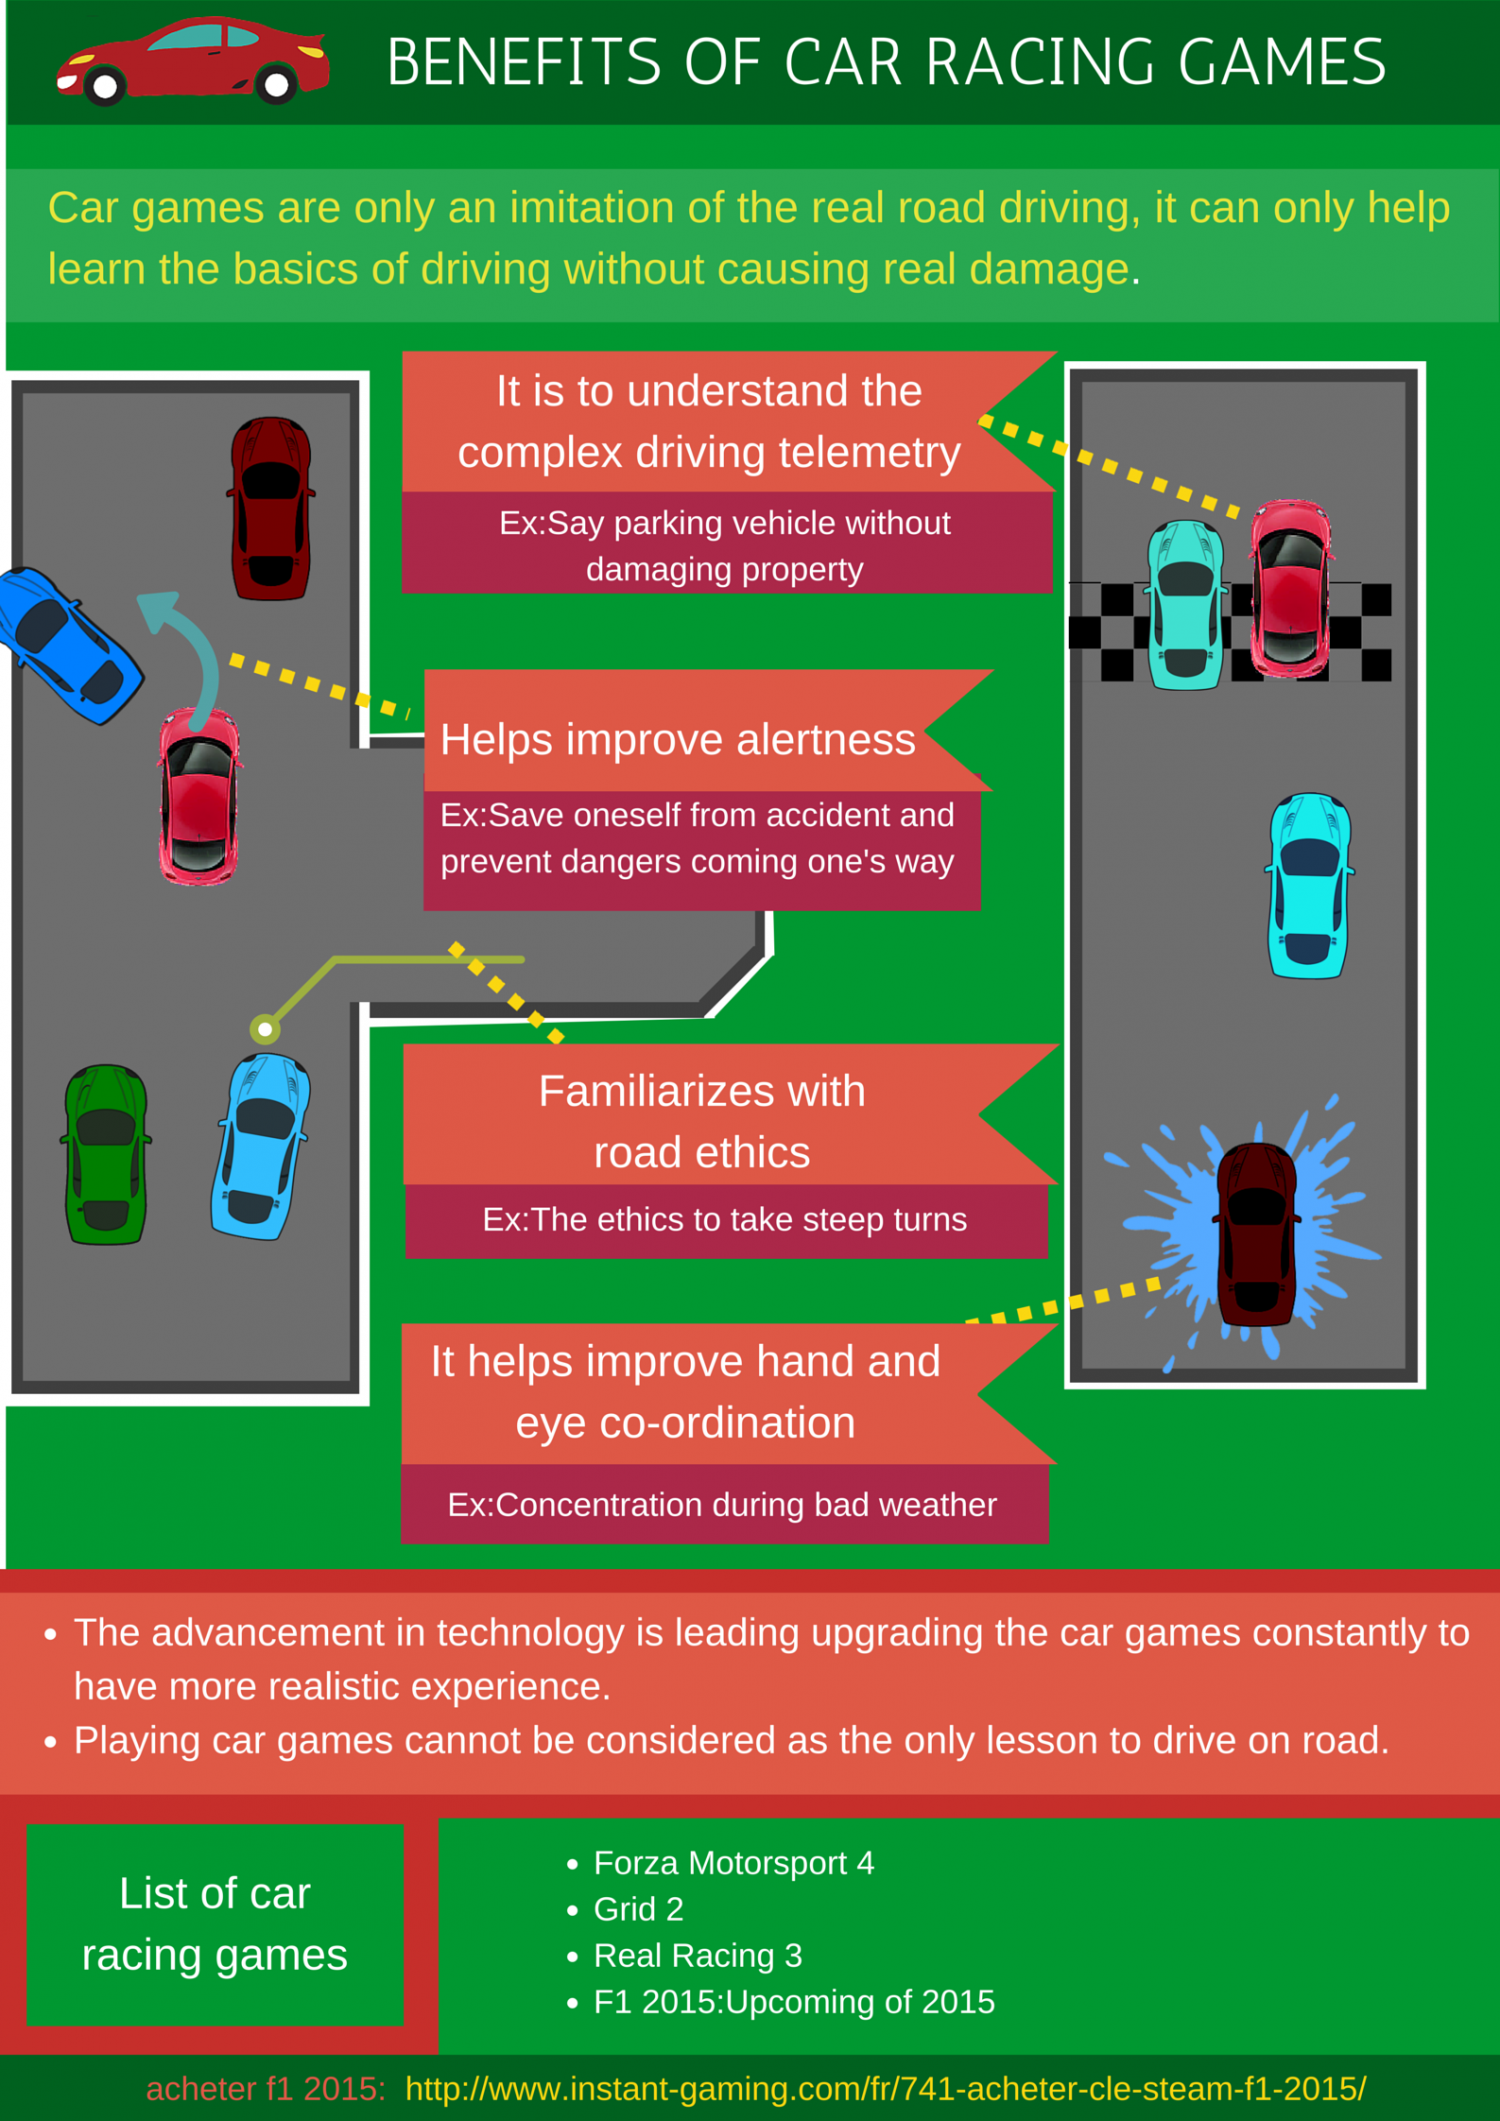 Benefits of Car Racing Games Infographic